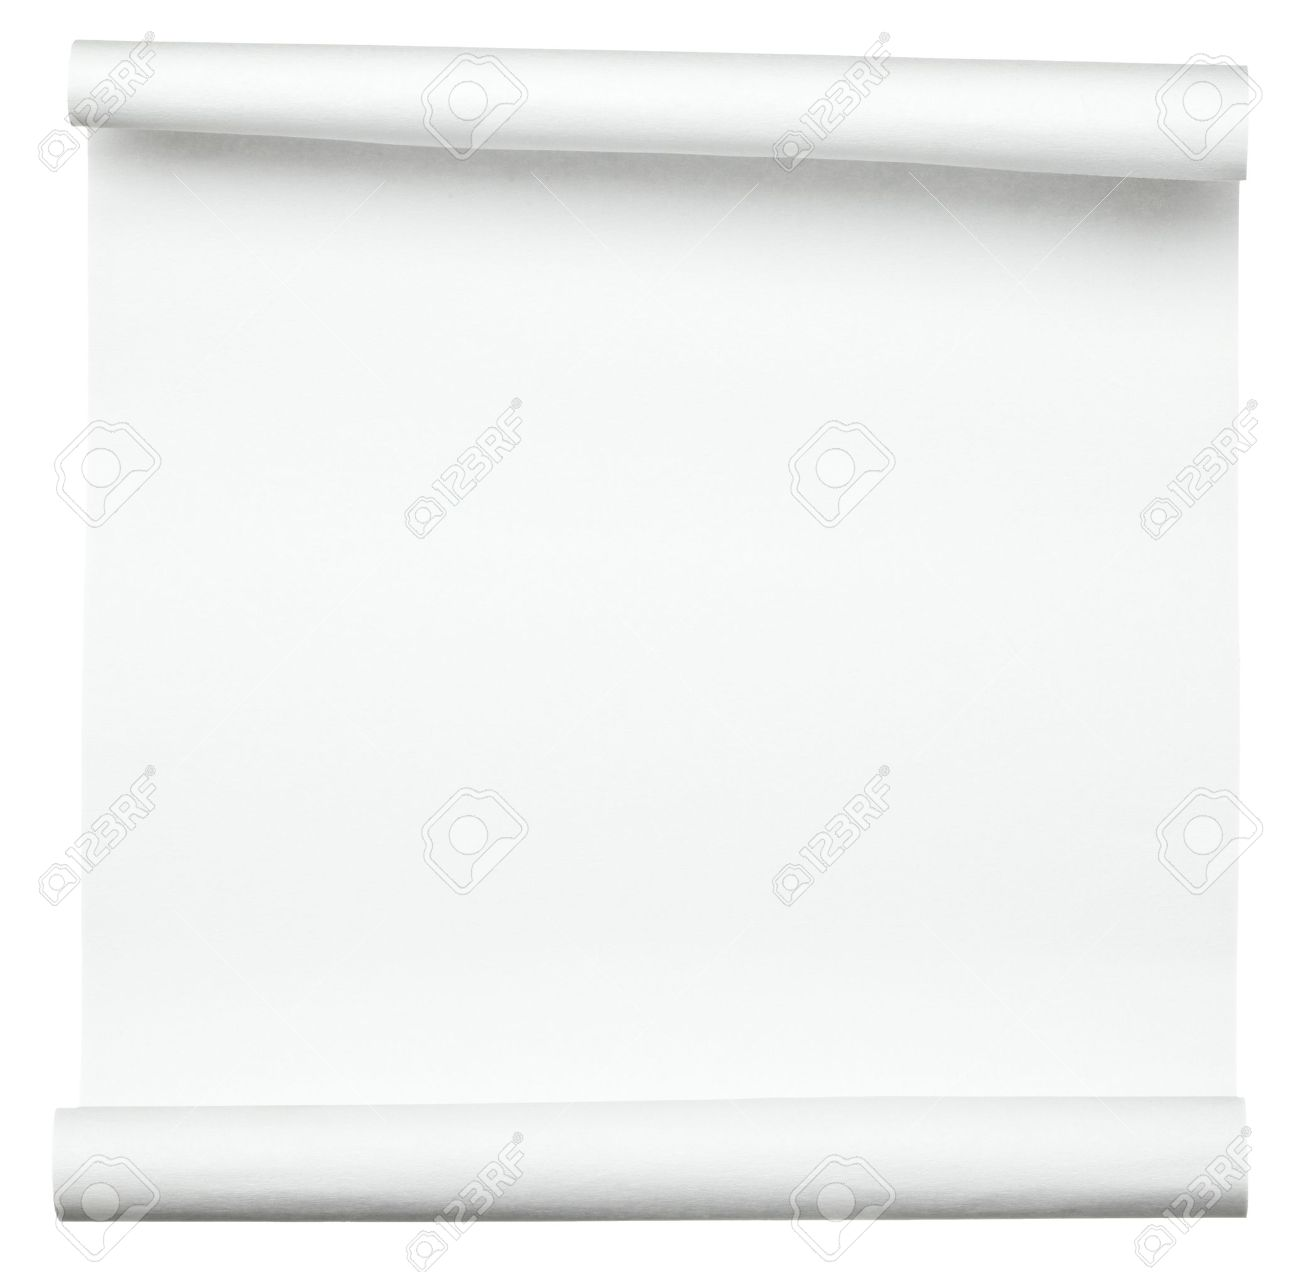 close up of  a curled paper on white background Stock Photo - 10227259